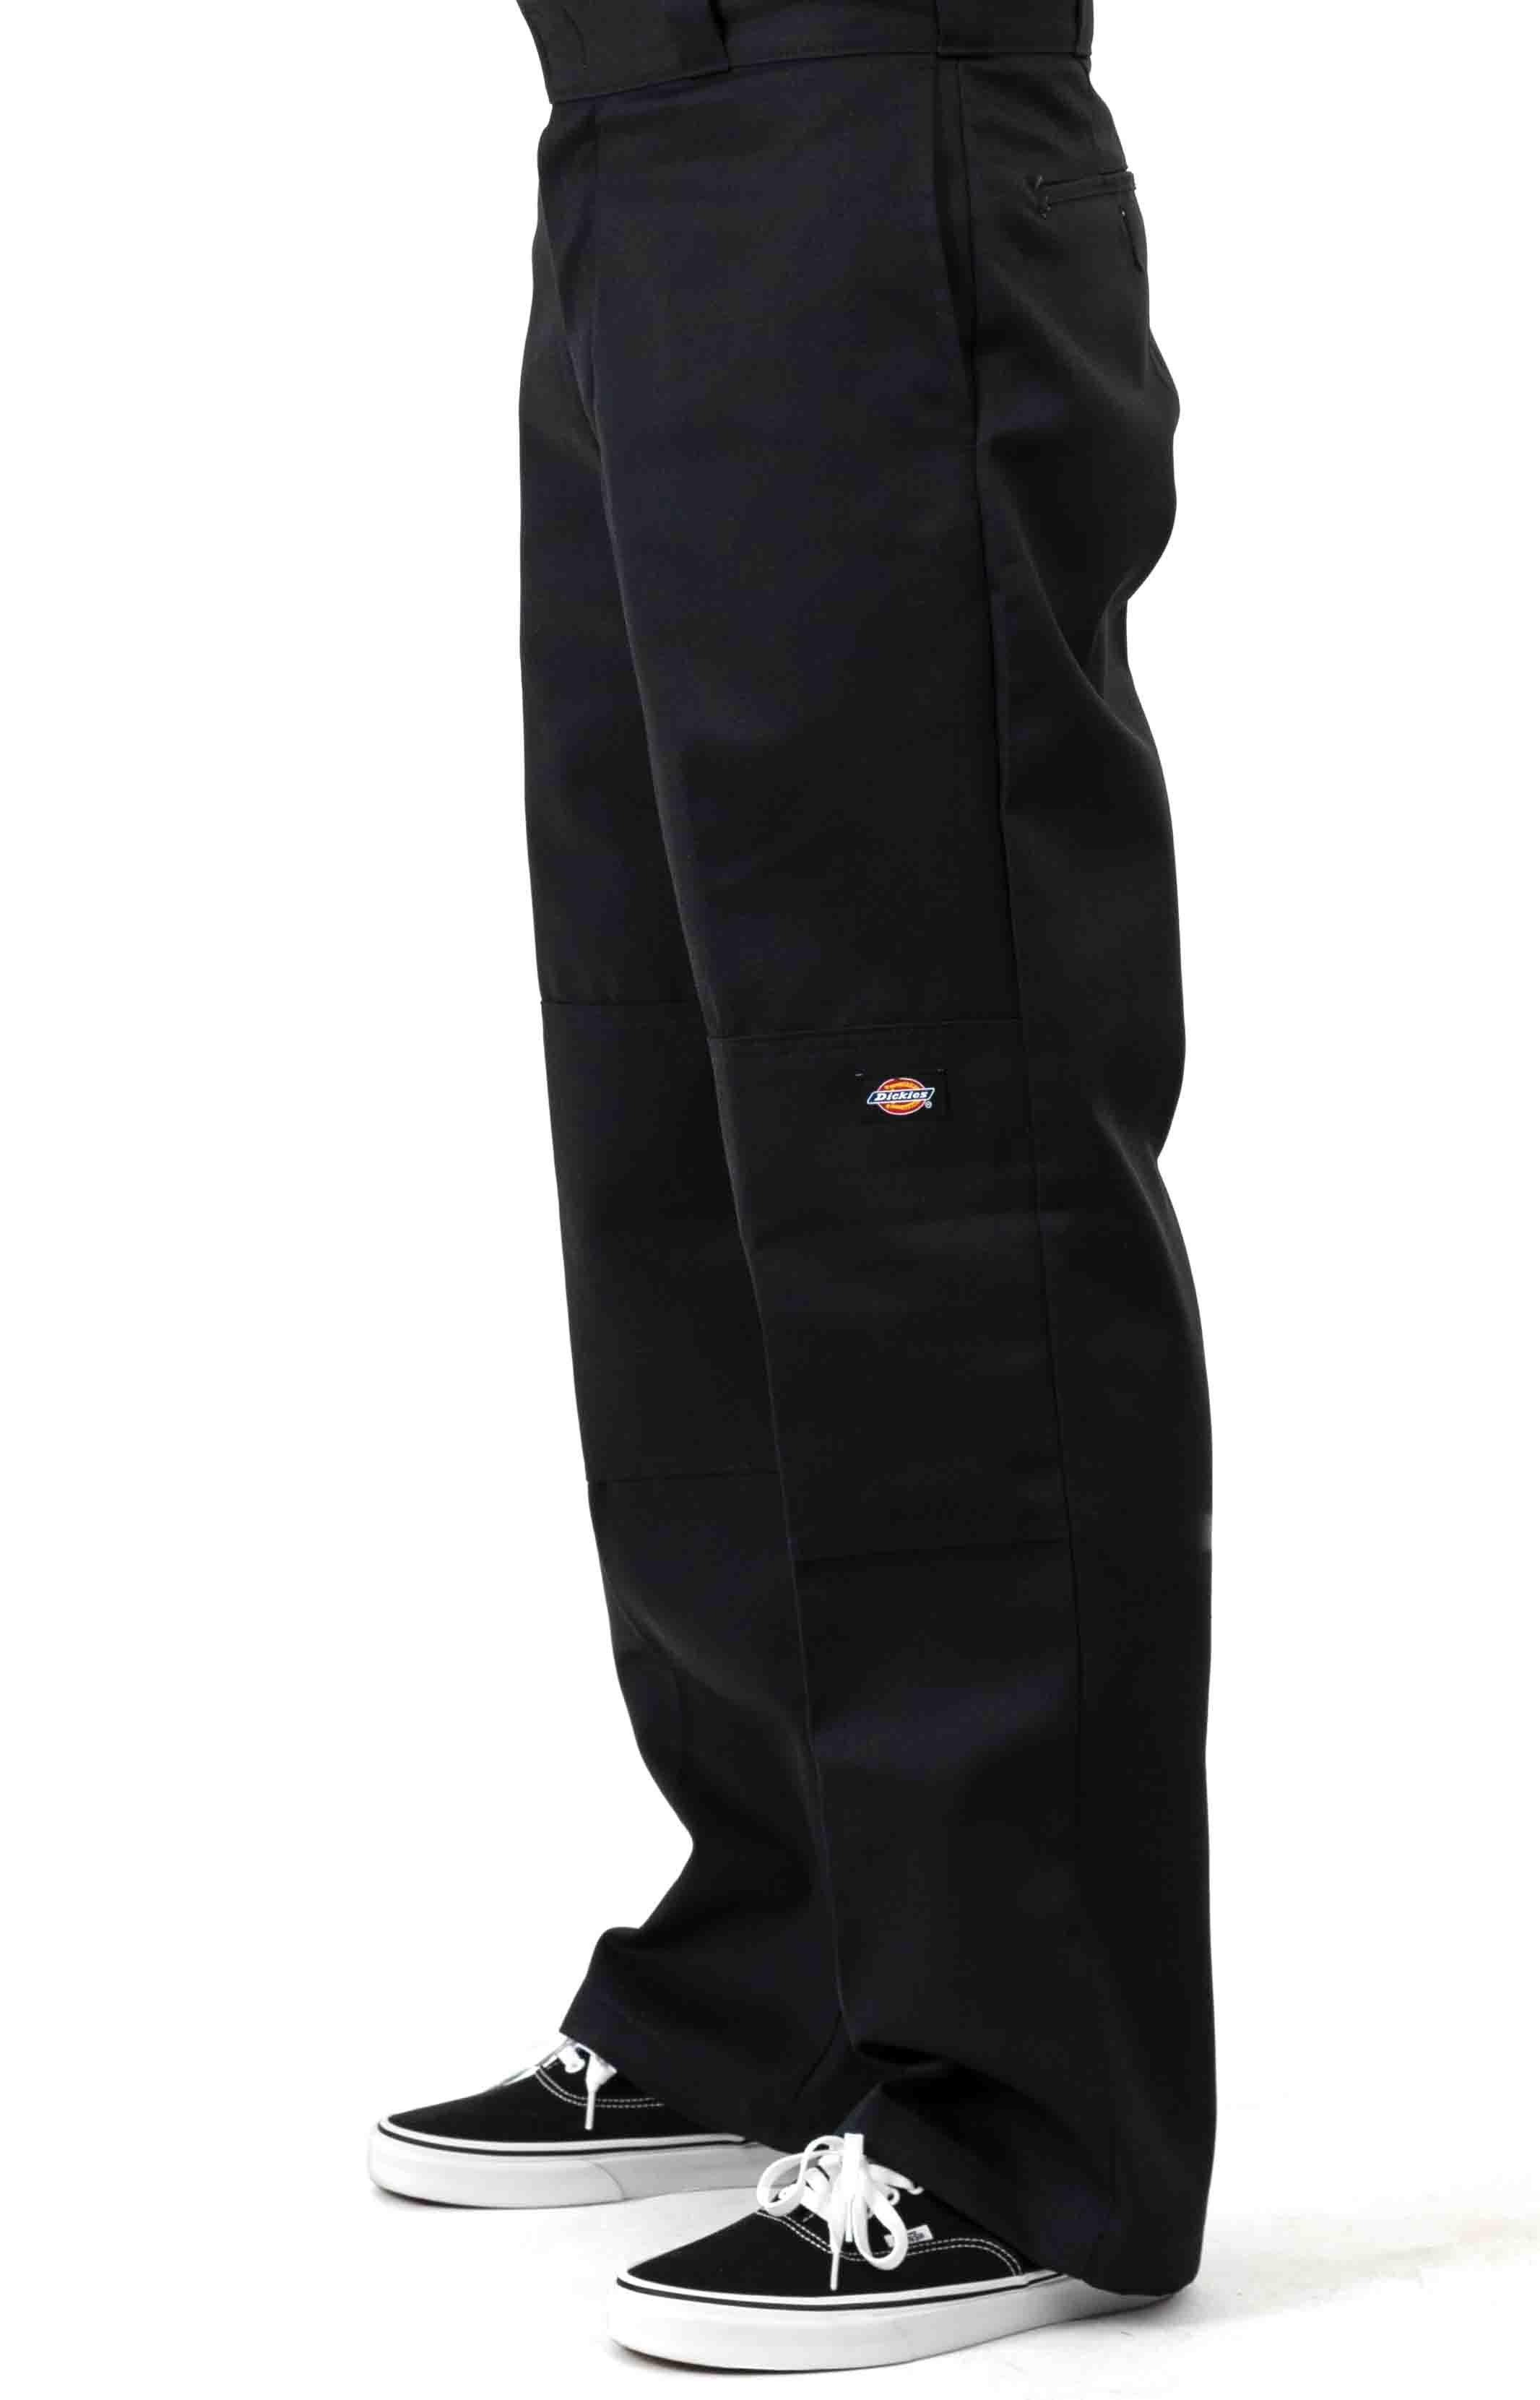 (WP852BK) Relaxed Fit Straight Leg Double Knee Pants - Black 2